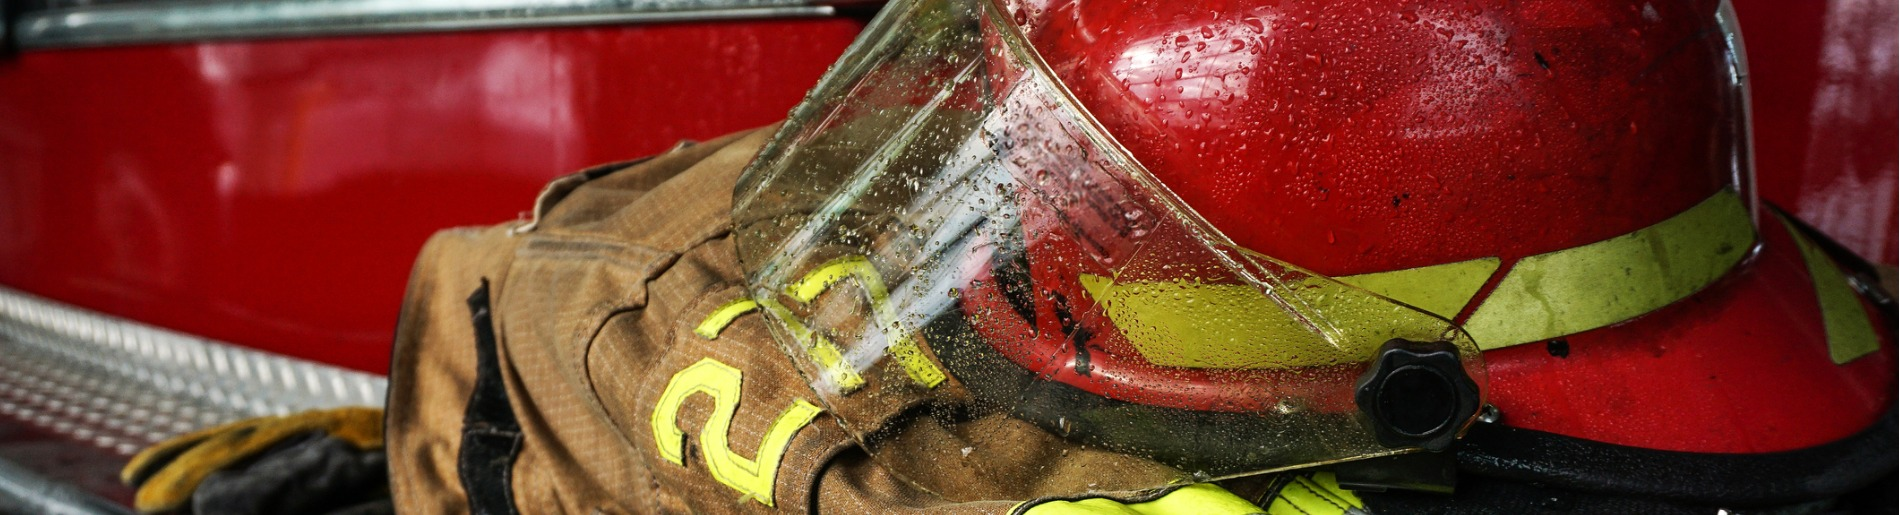 Firefighter's helmet and coat sitting on fire truck